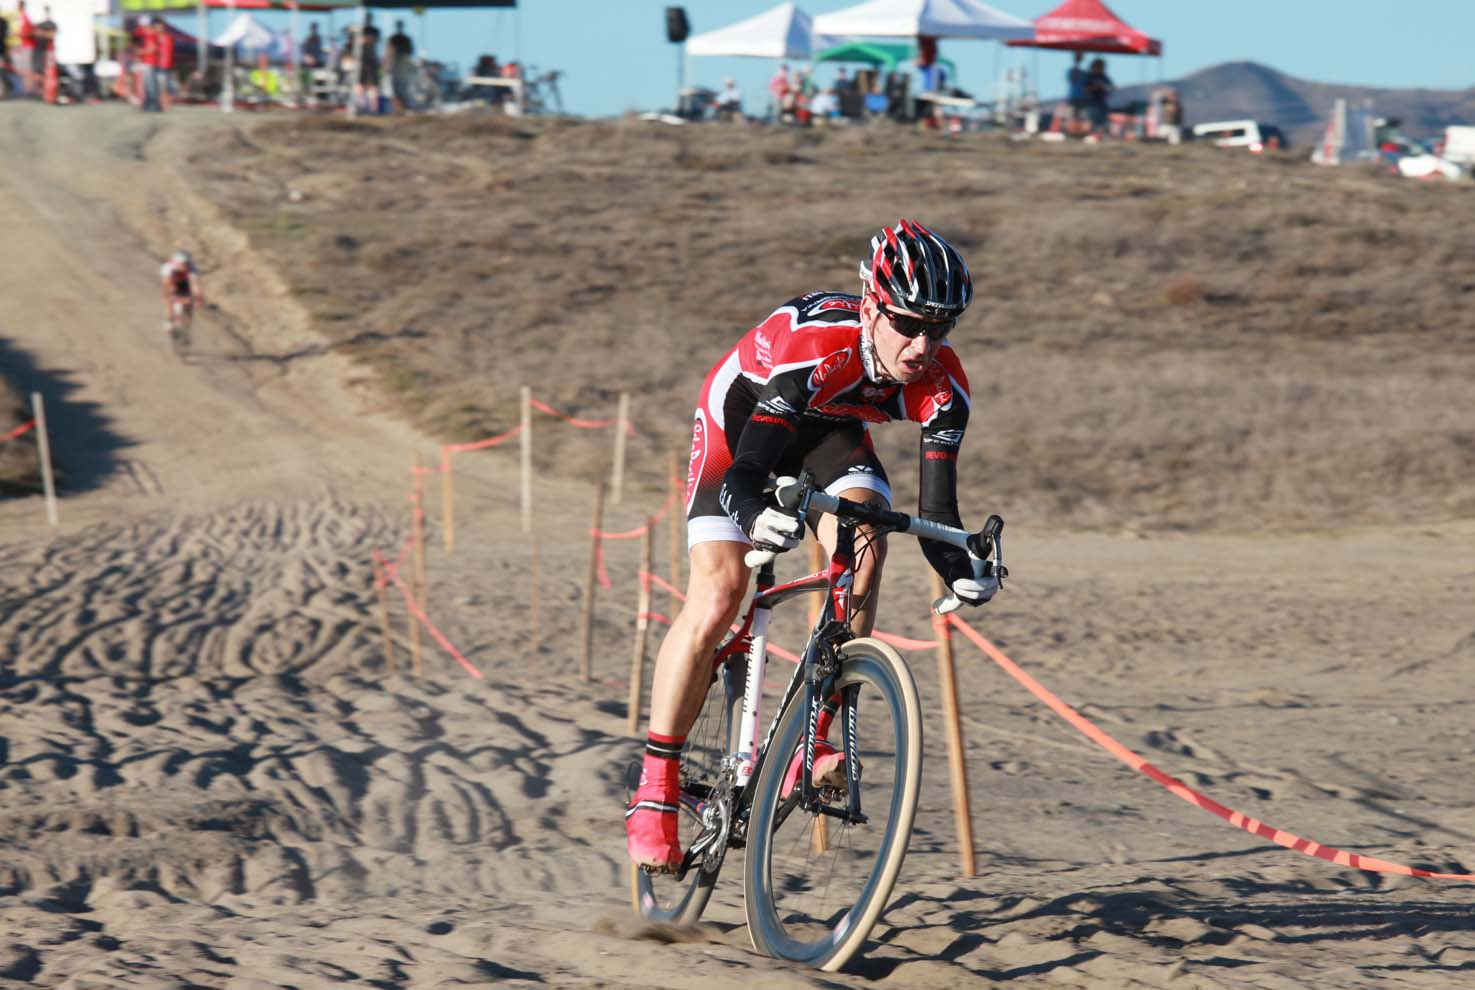 Could cyclocross storm the beaches of San Diego? We won't hold our breath but Brent Prenzlow can hope. © Richard Murphy